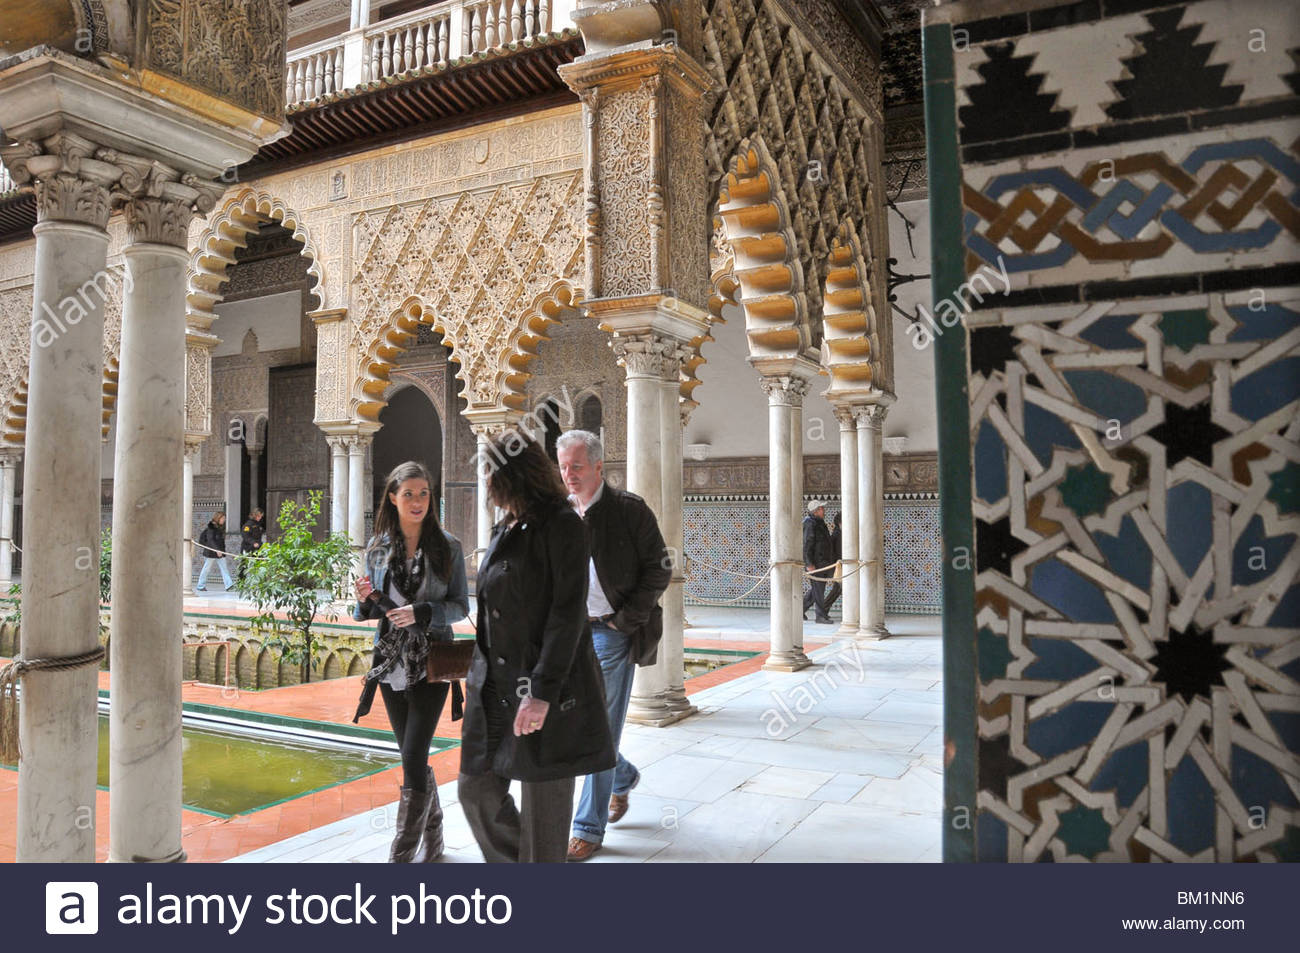 A courtyard in the Alcazar Palace in Seville (Sevilla), Andalucia, Spain - Stock Image